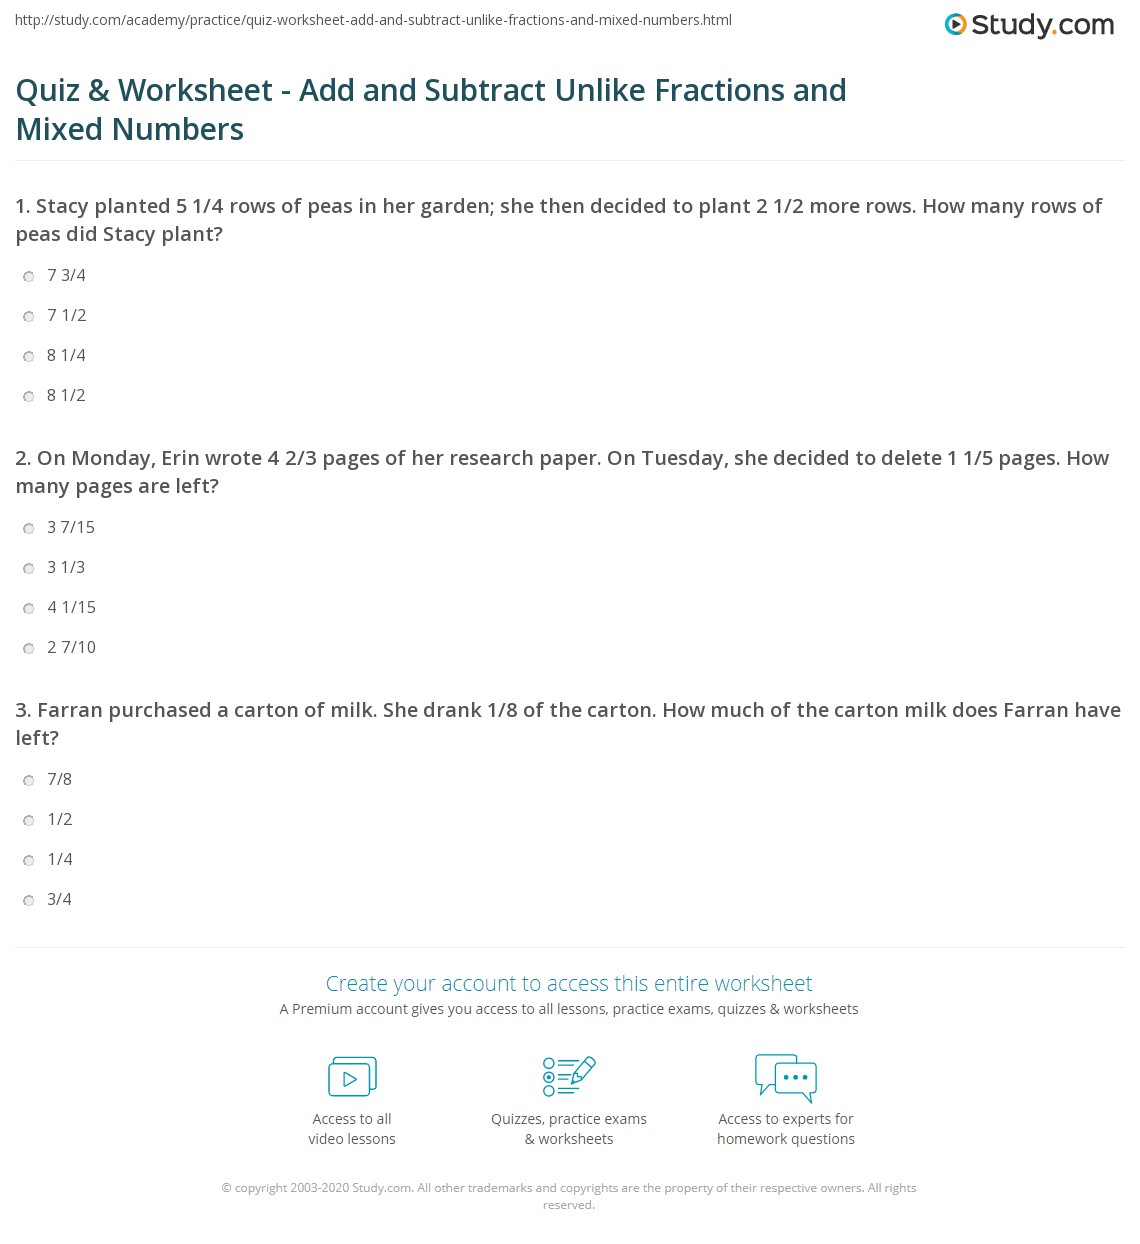 Quiz Worksheet Add and Subtract Unlike Fractions and Mixed – Adding and Subtracting Fractions and Mixed Numbers Worksheets